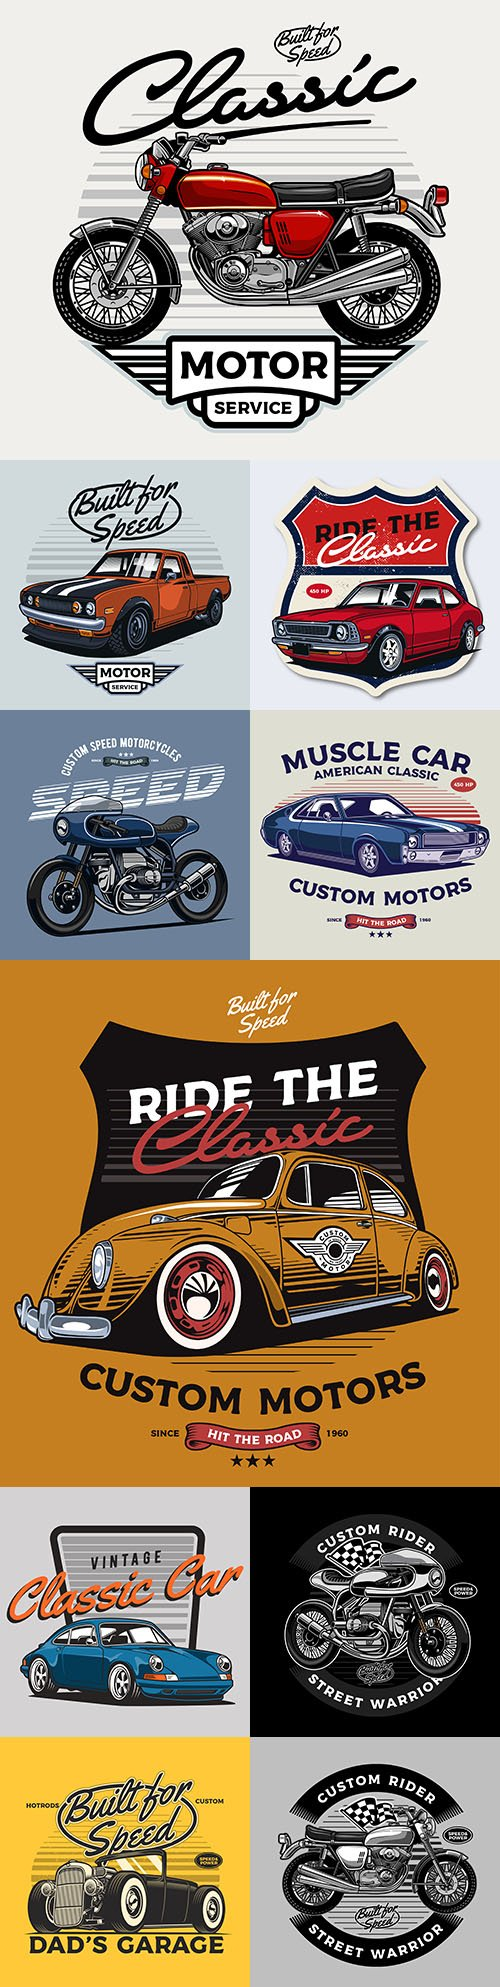 Classic car and vintage motorcycle illustrations